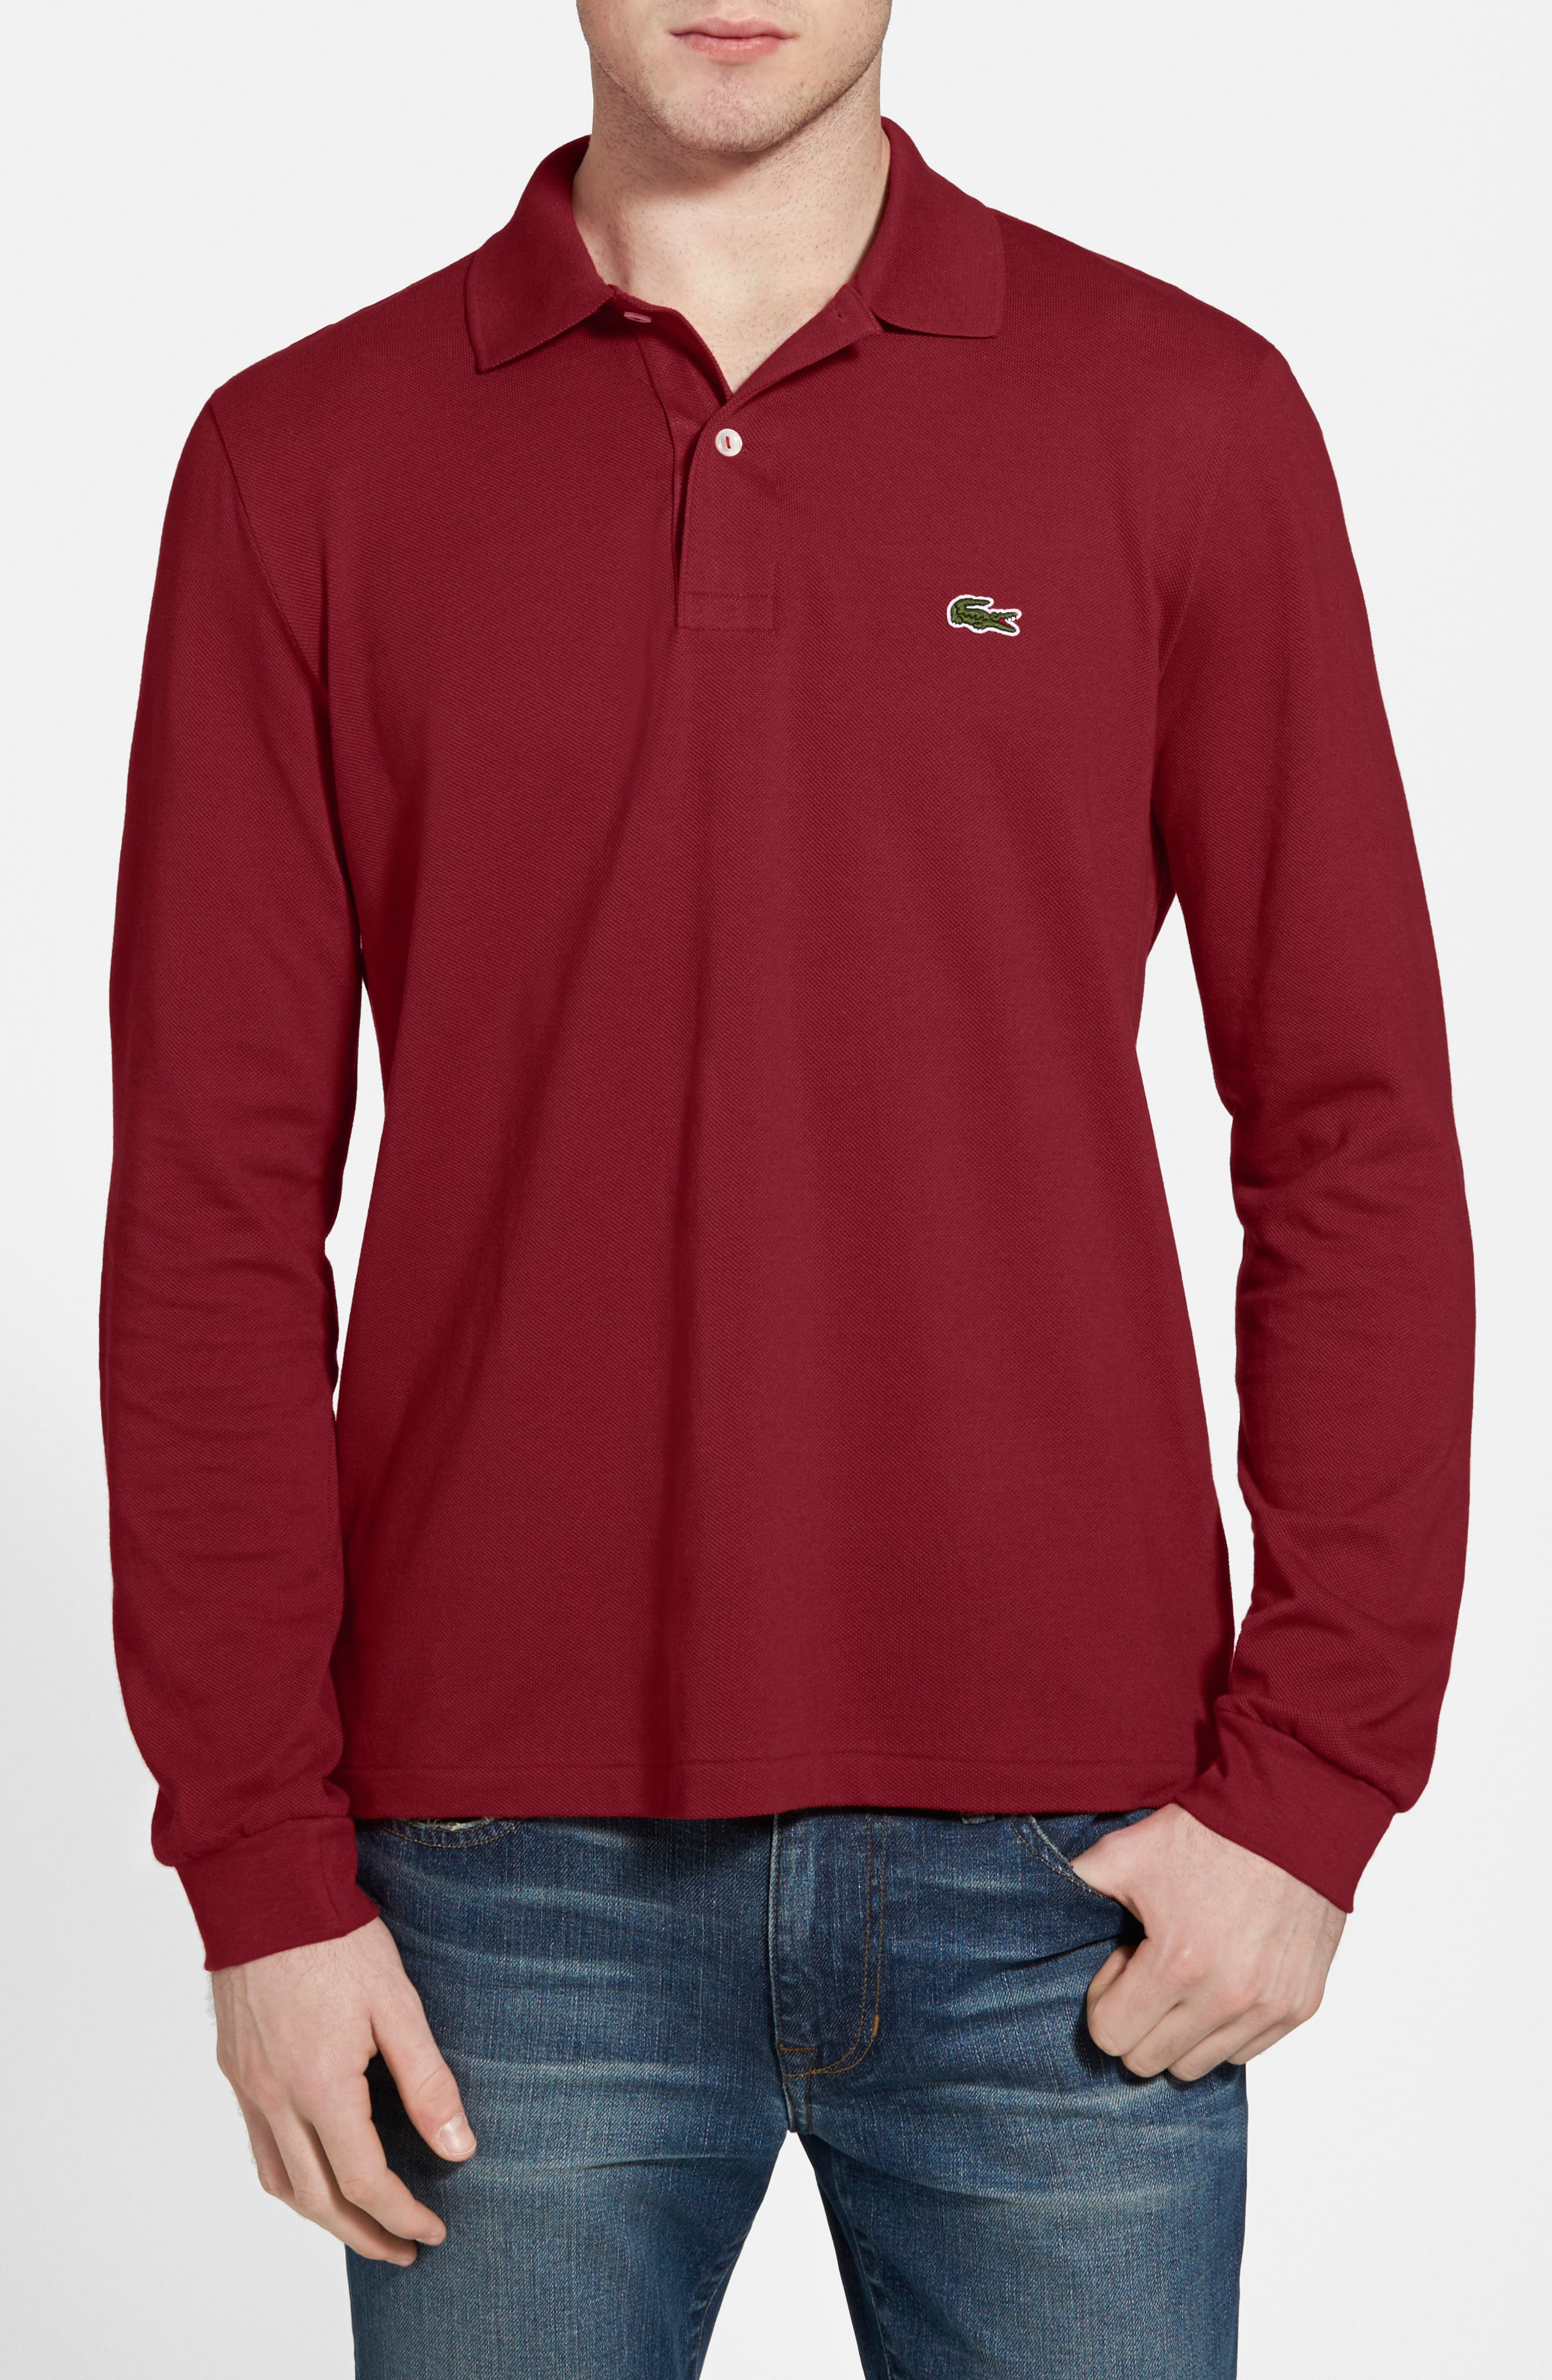 Alternate Image 1 Selected - Lacoste Classic Fit Long Sleeve Piqué Polo